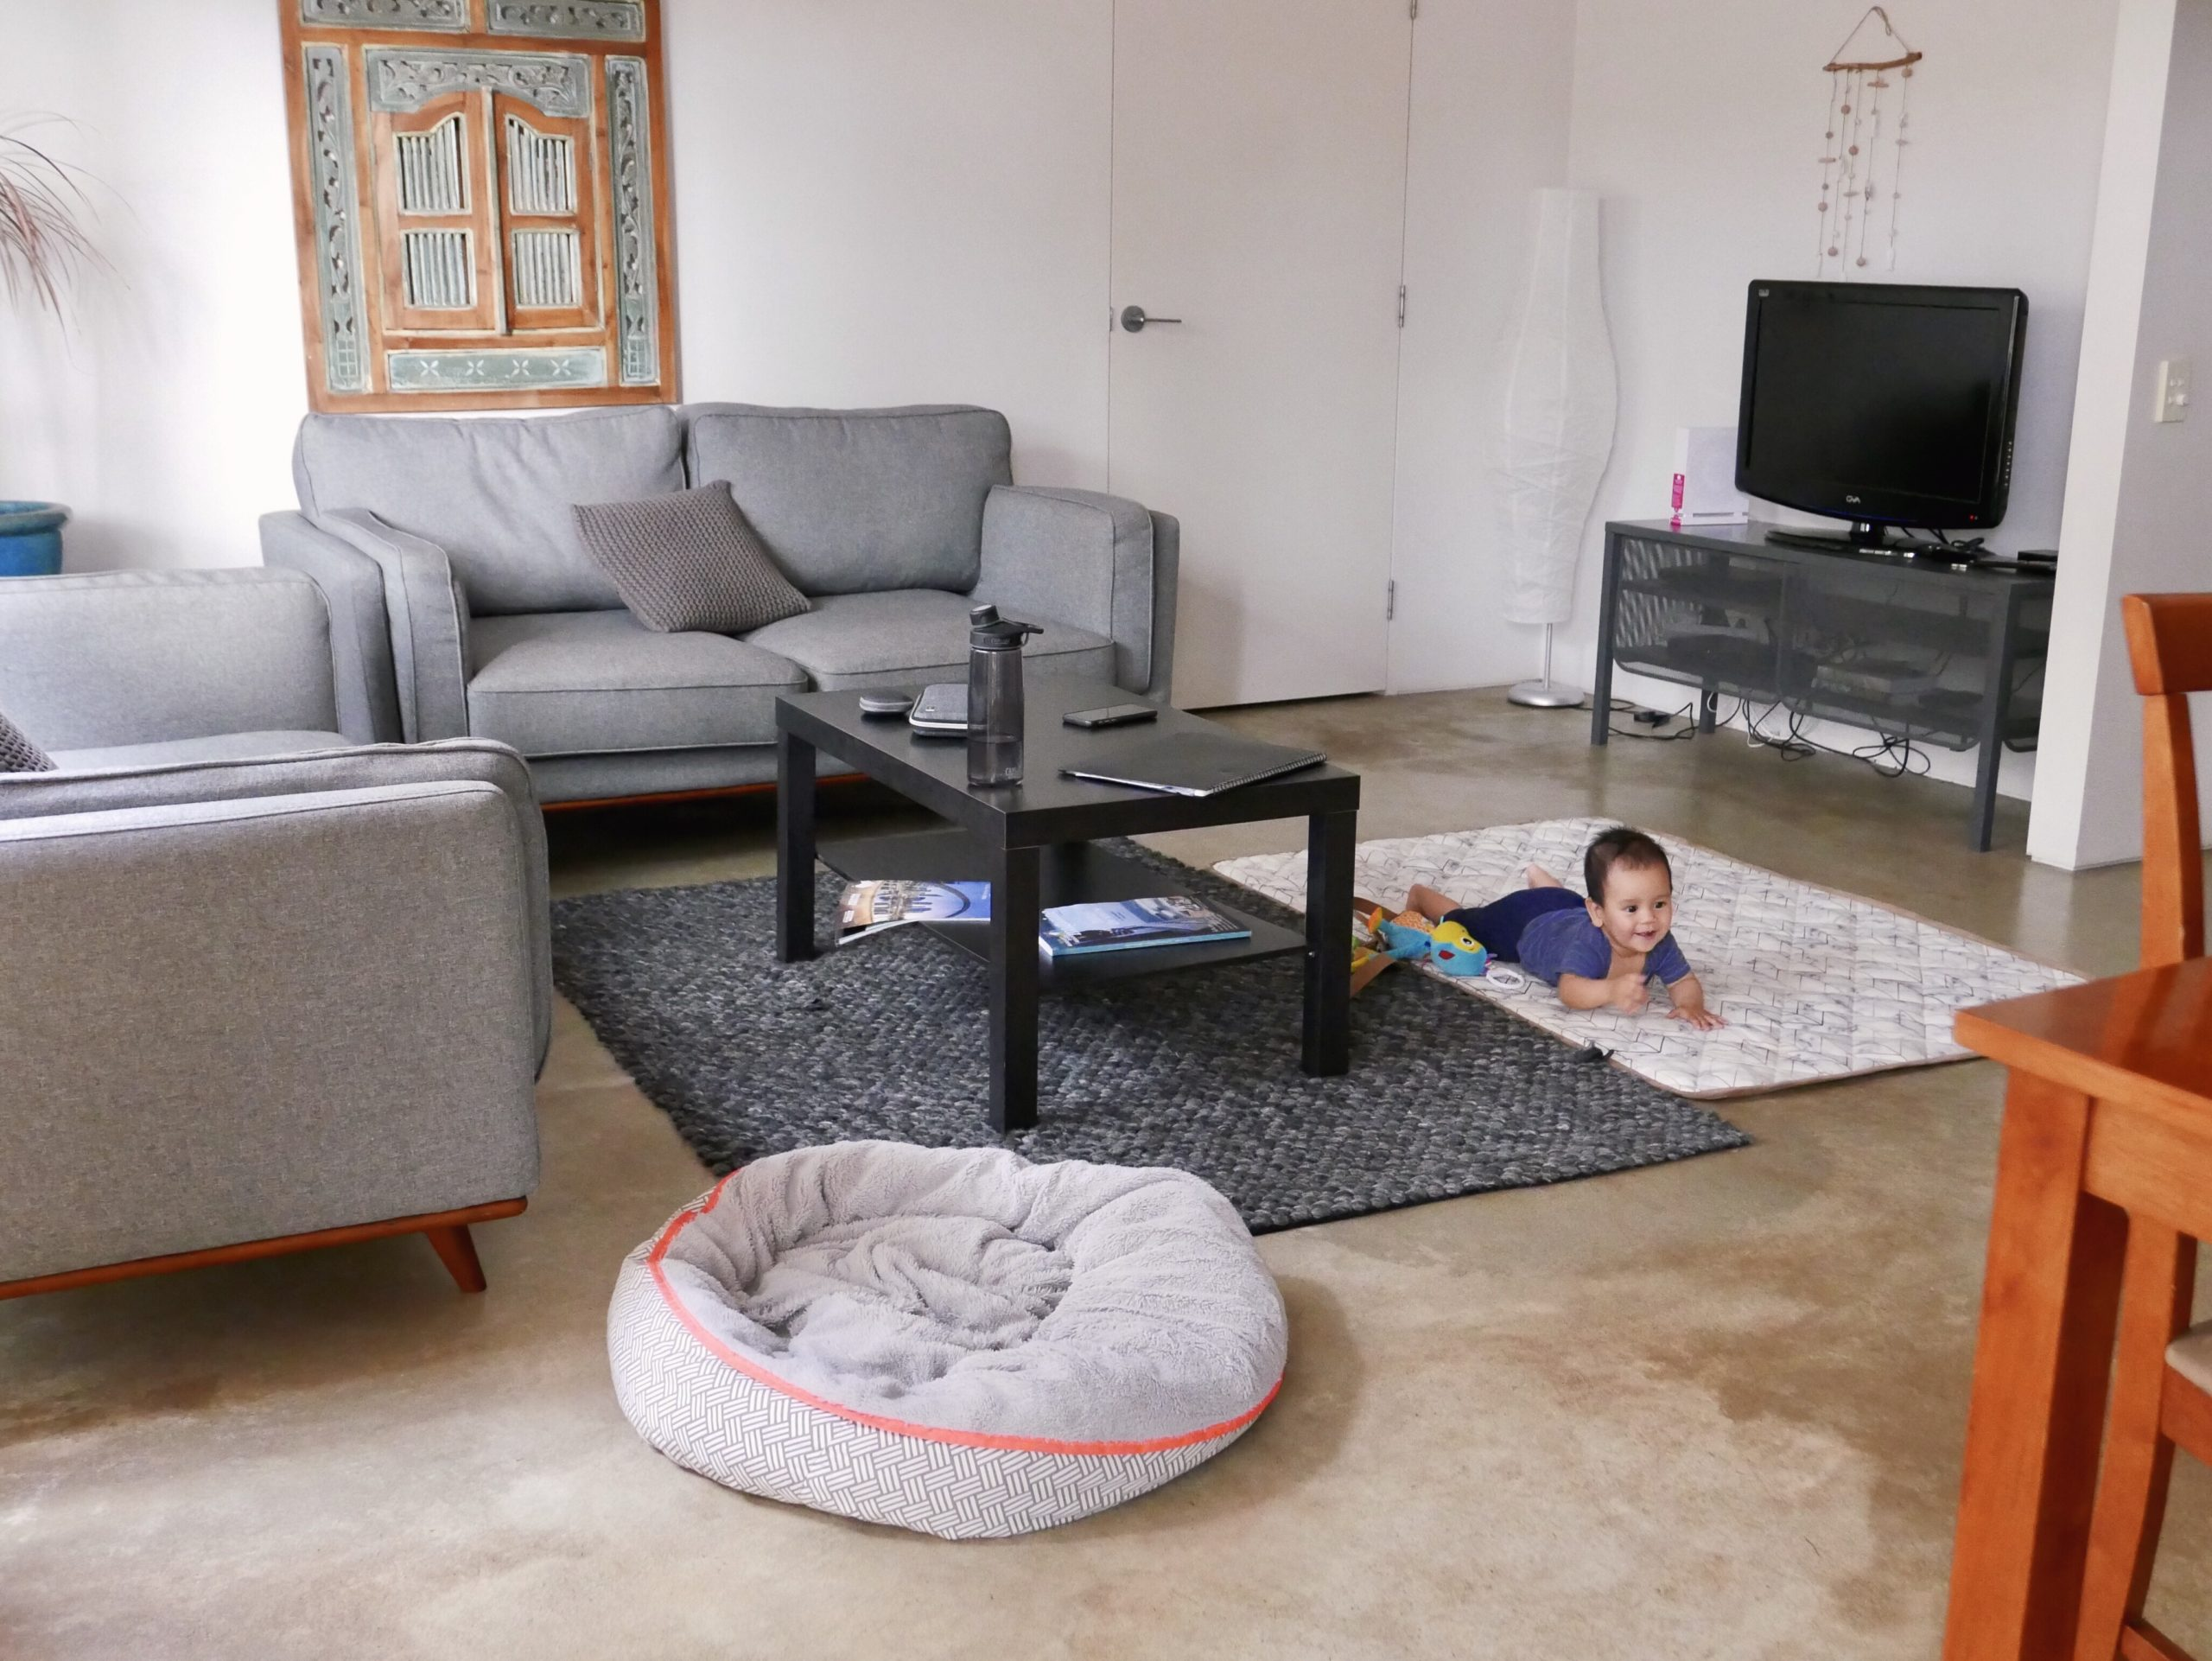 Photo of a baby crawling on the floor of a living room